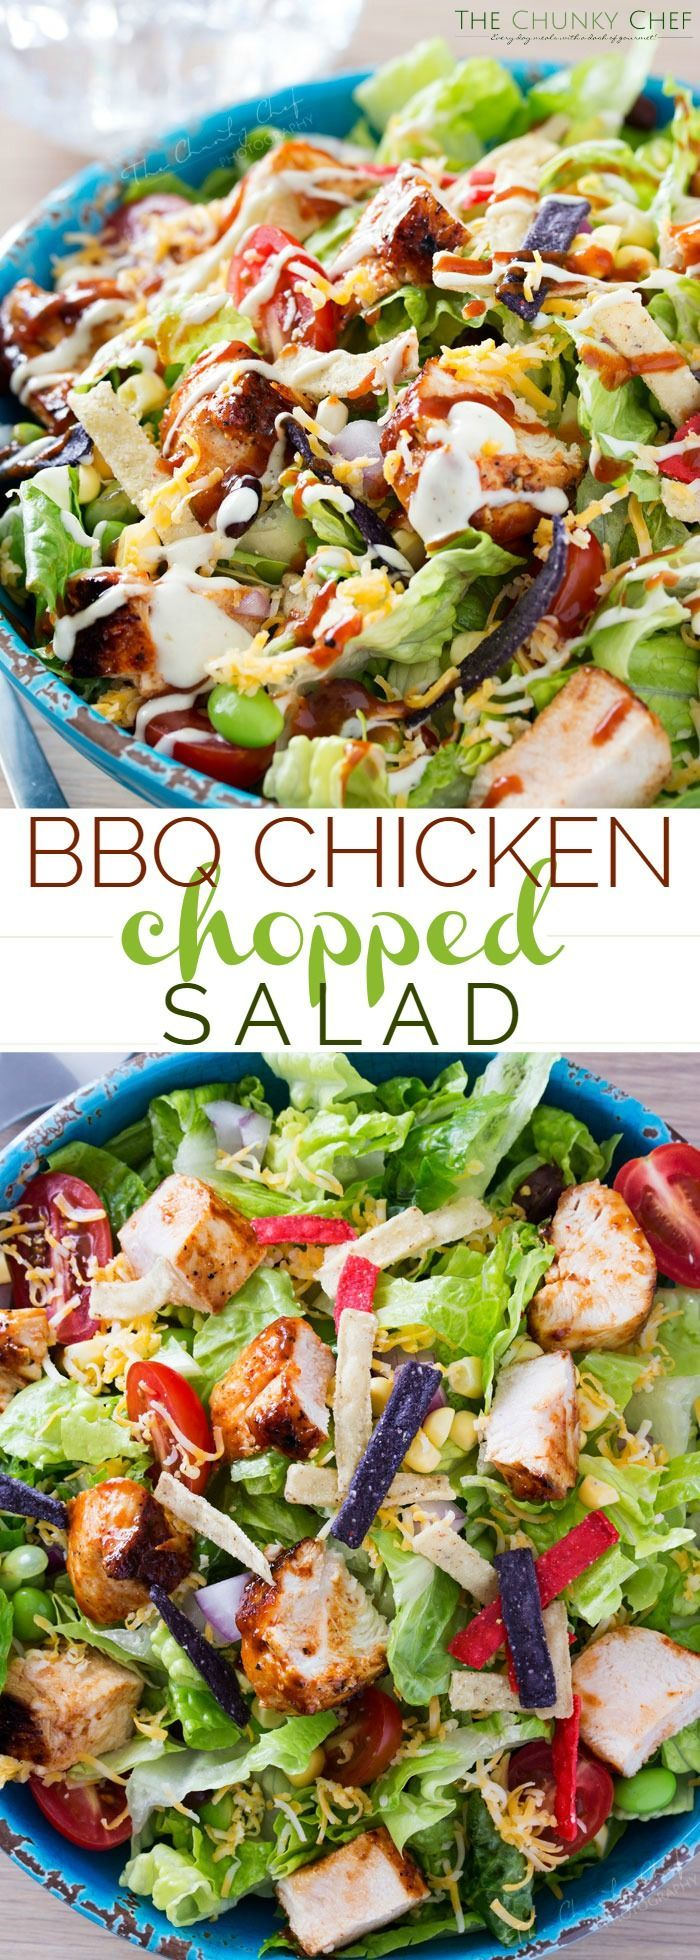 BBQ Chicken Salad   This fresh and crisp bbq chicken salad is packed with veggies, tender grilled chicken, and topped with bbq sauce and a green chile ranch dressing!   http://thechunkychef.com #SauceMaster @stubbsbbqsauce